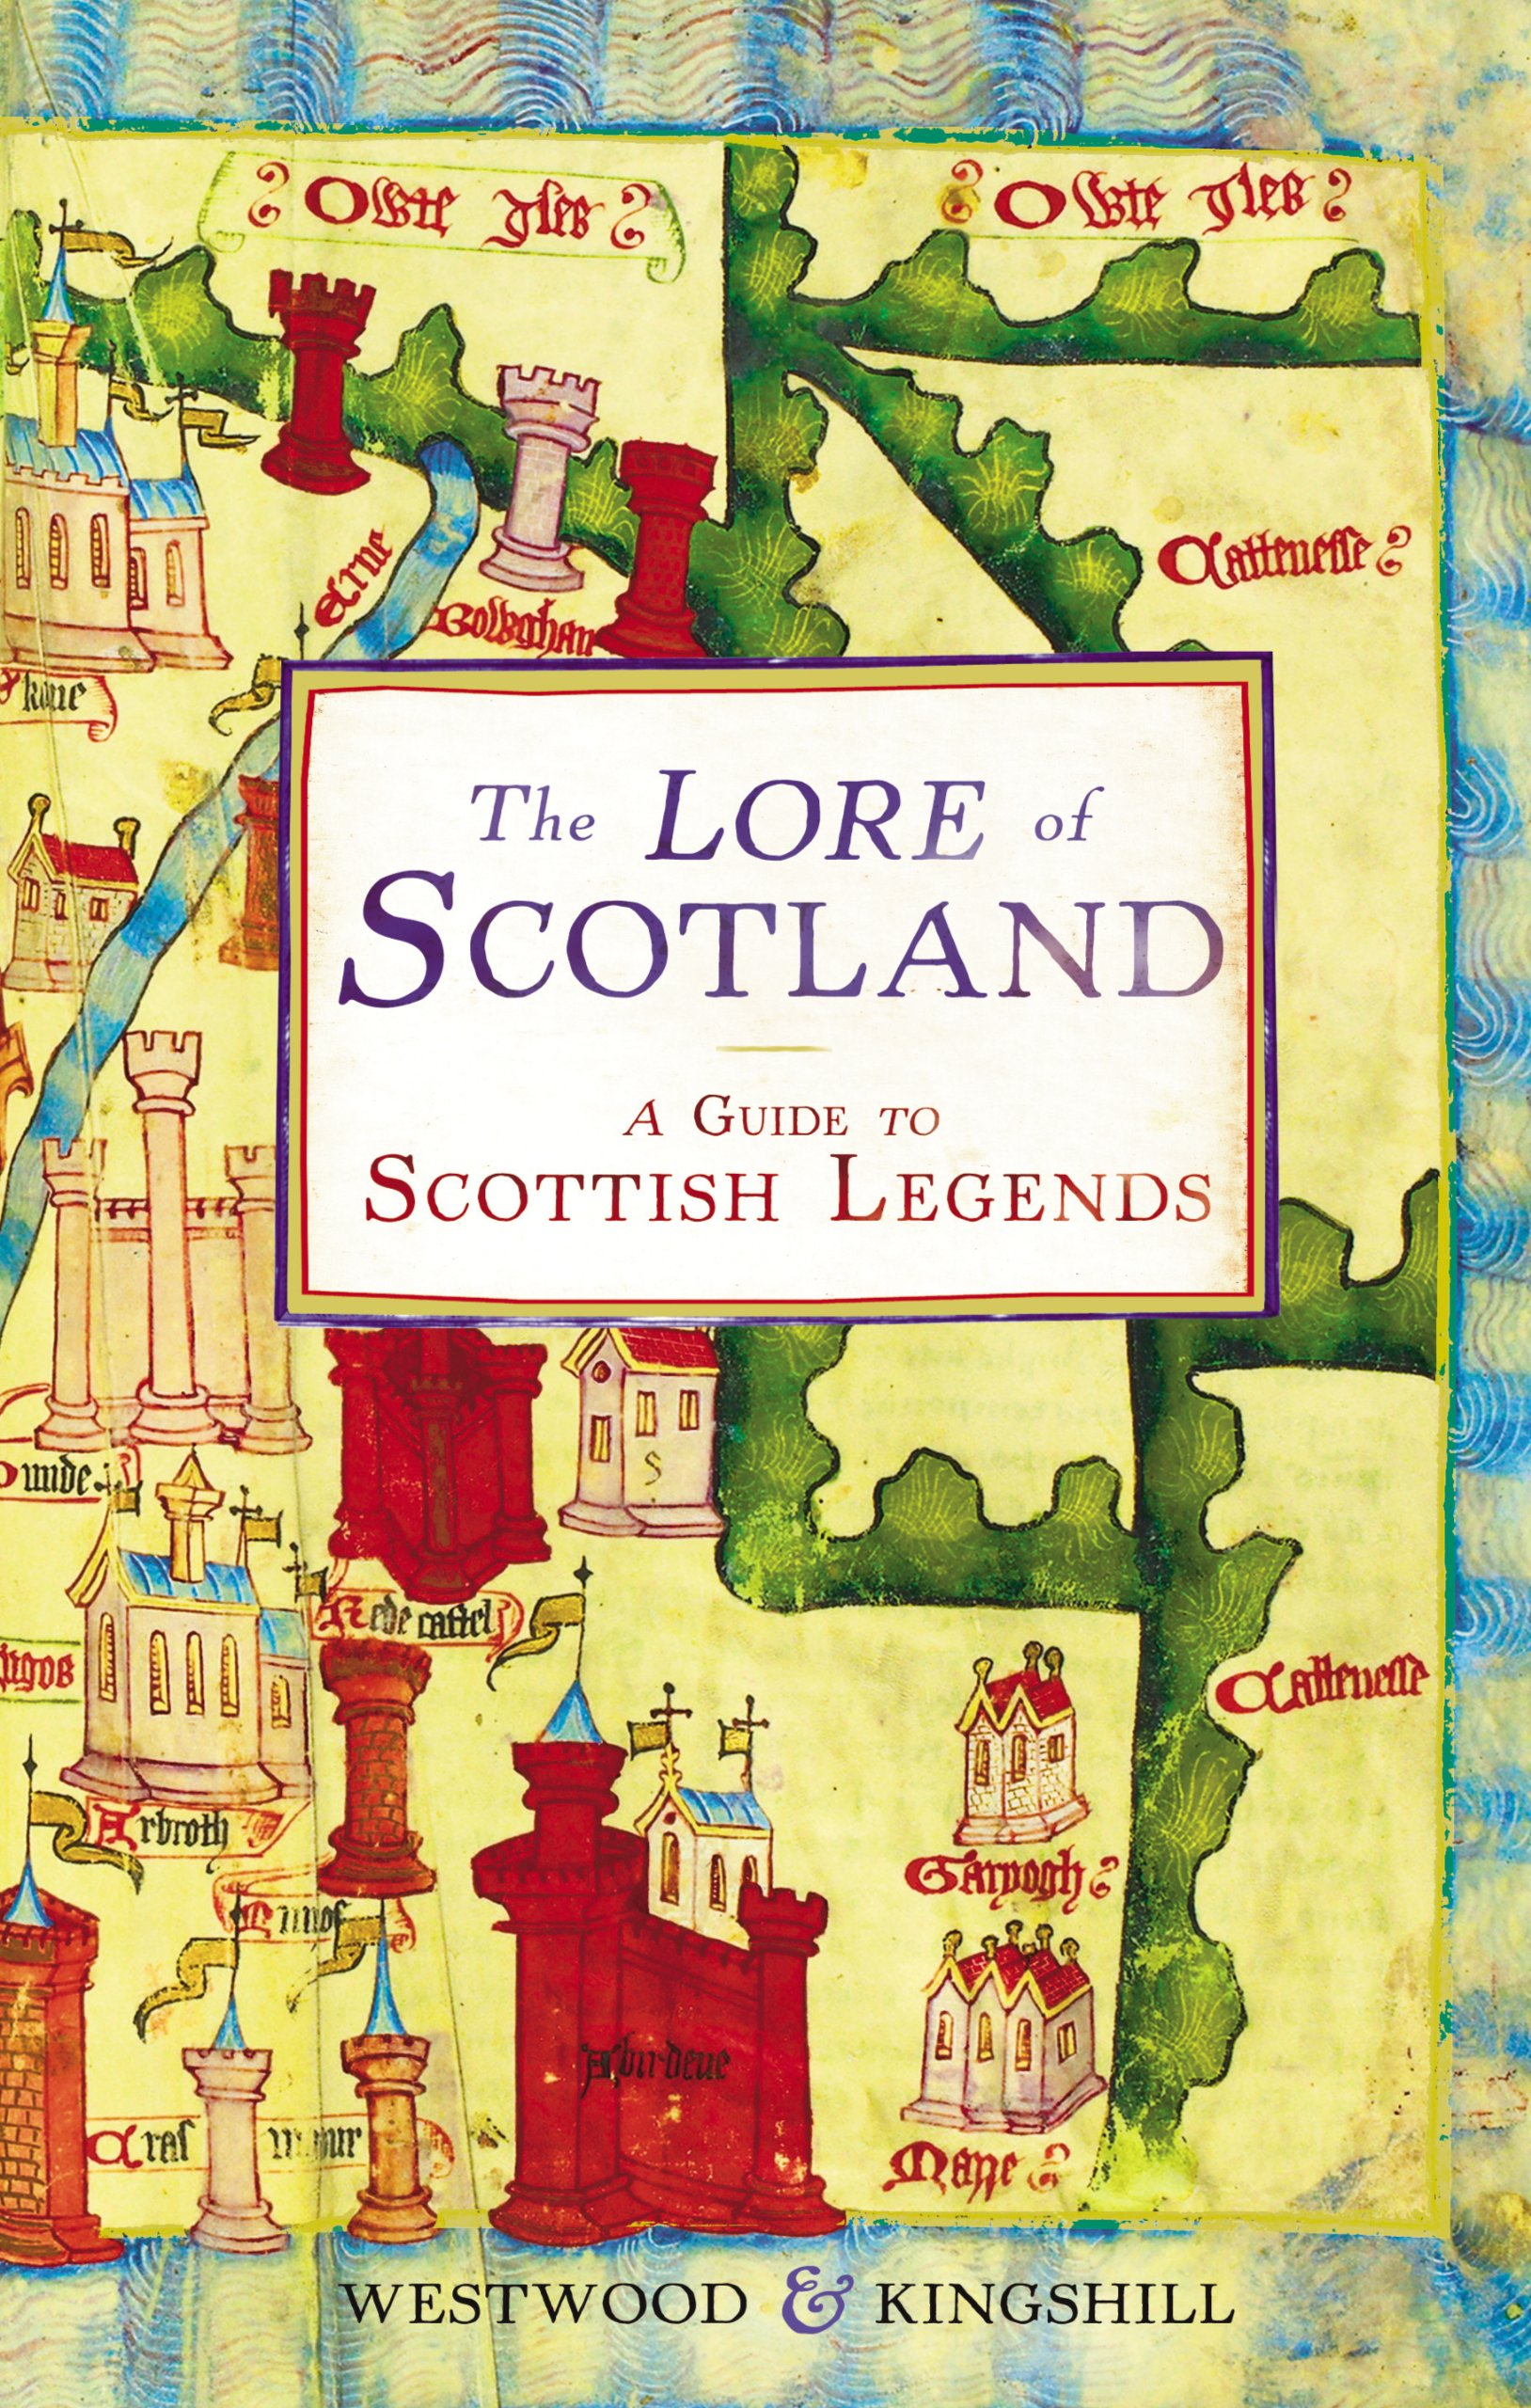 The Lore of Scotland by Westwood and Kingshill